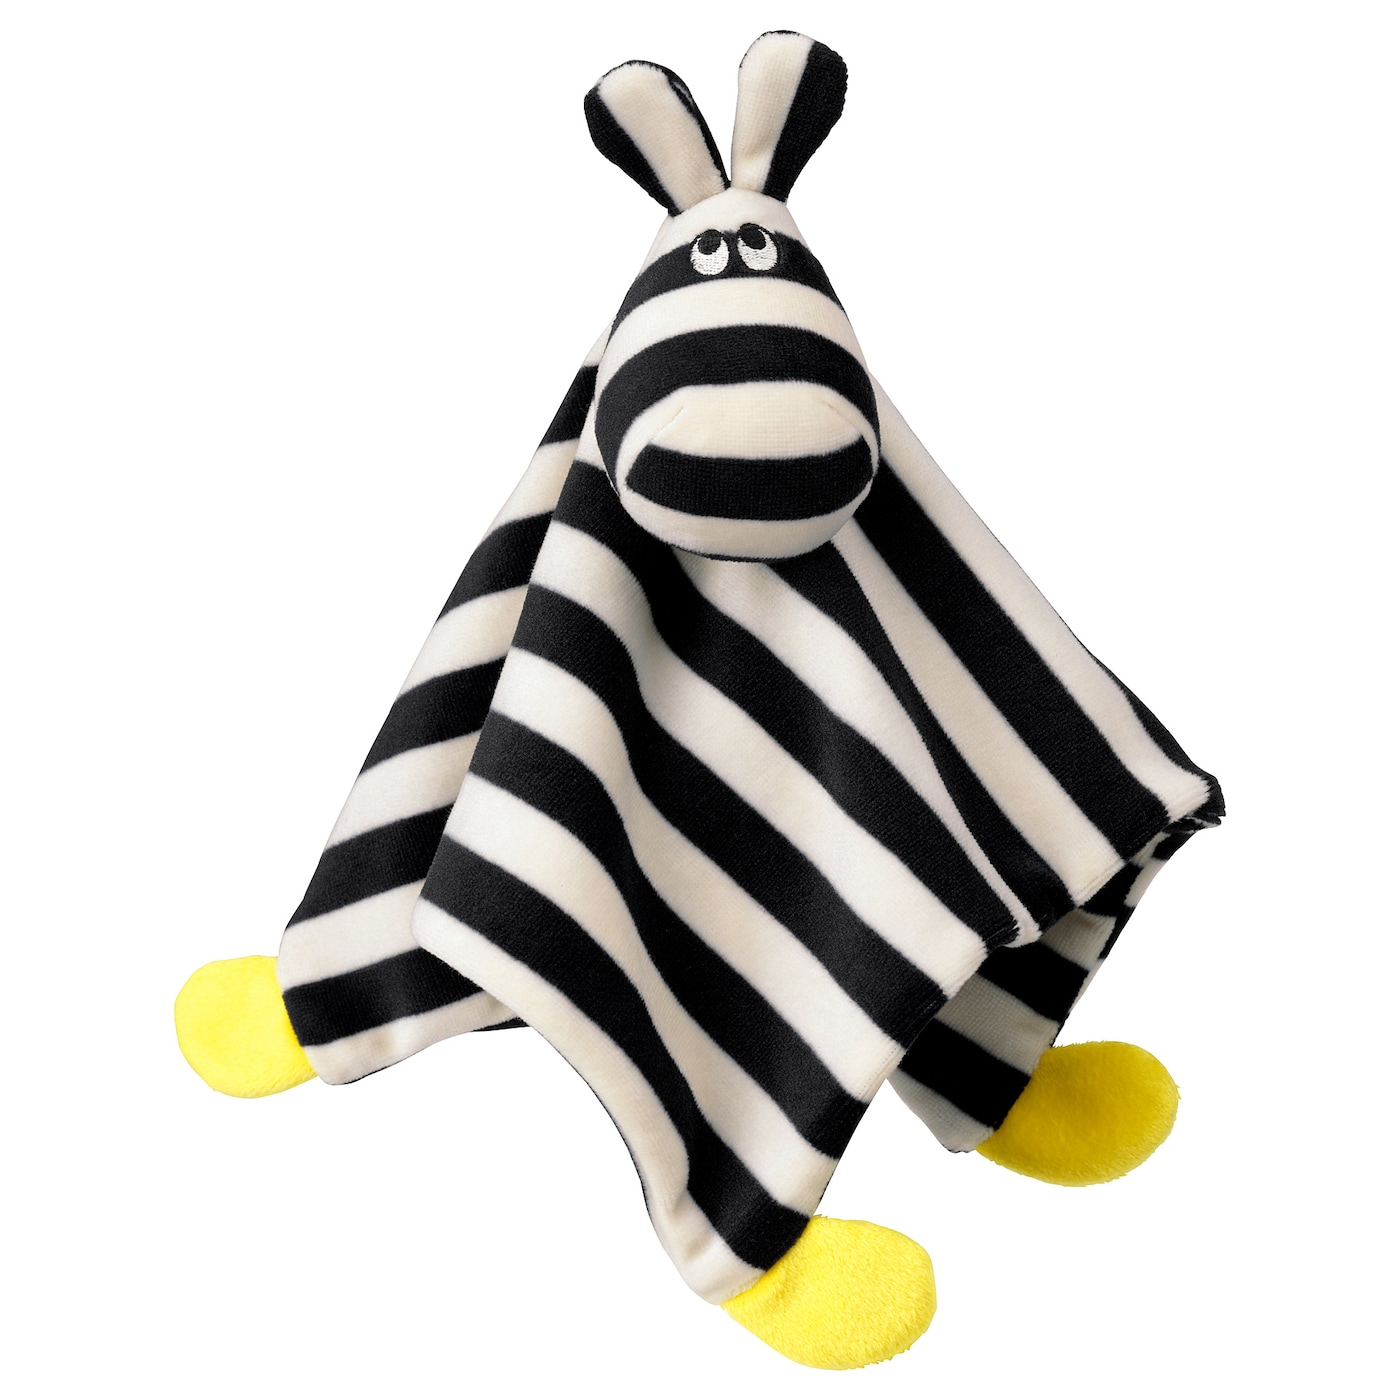 IKEA KLAPPA comfort blanket with soft toy Sharp contrasts that are easy for a baby to see.